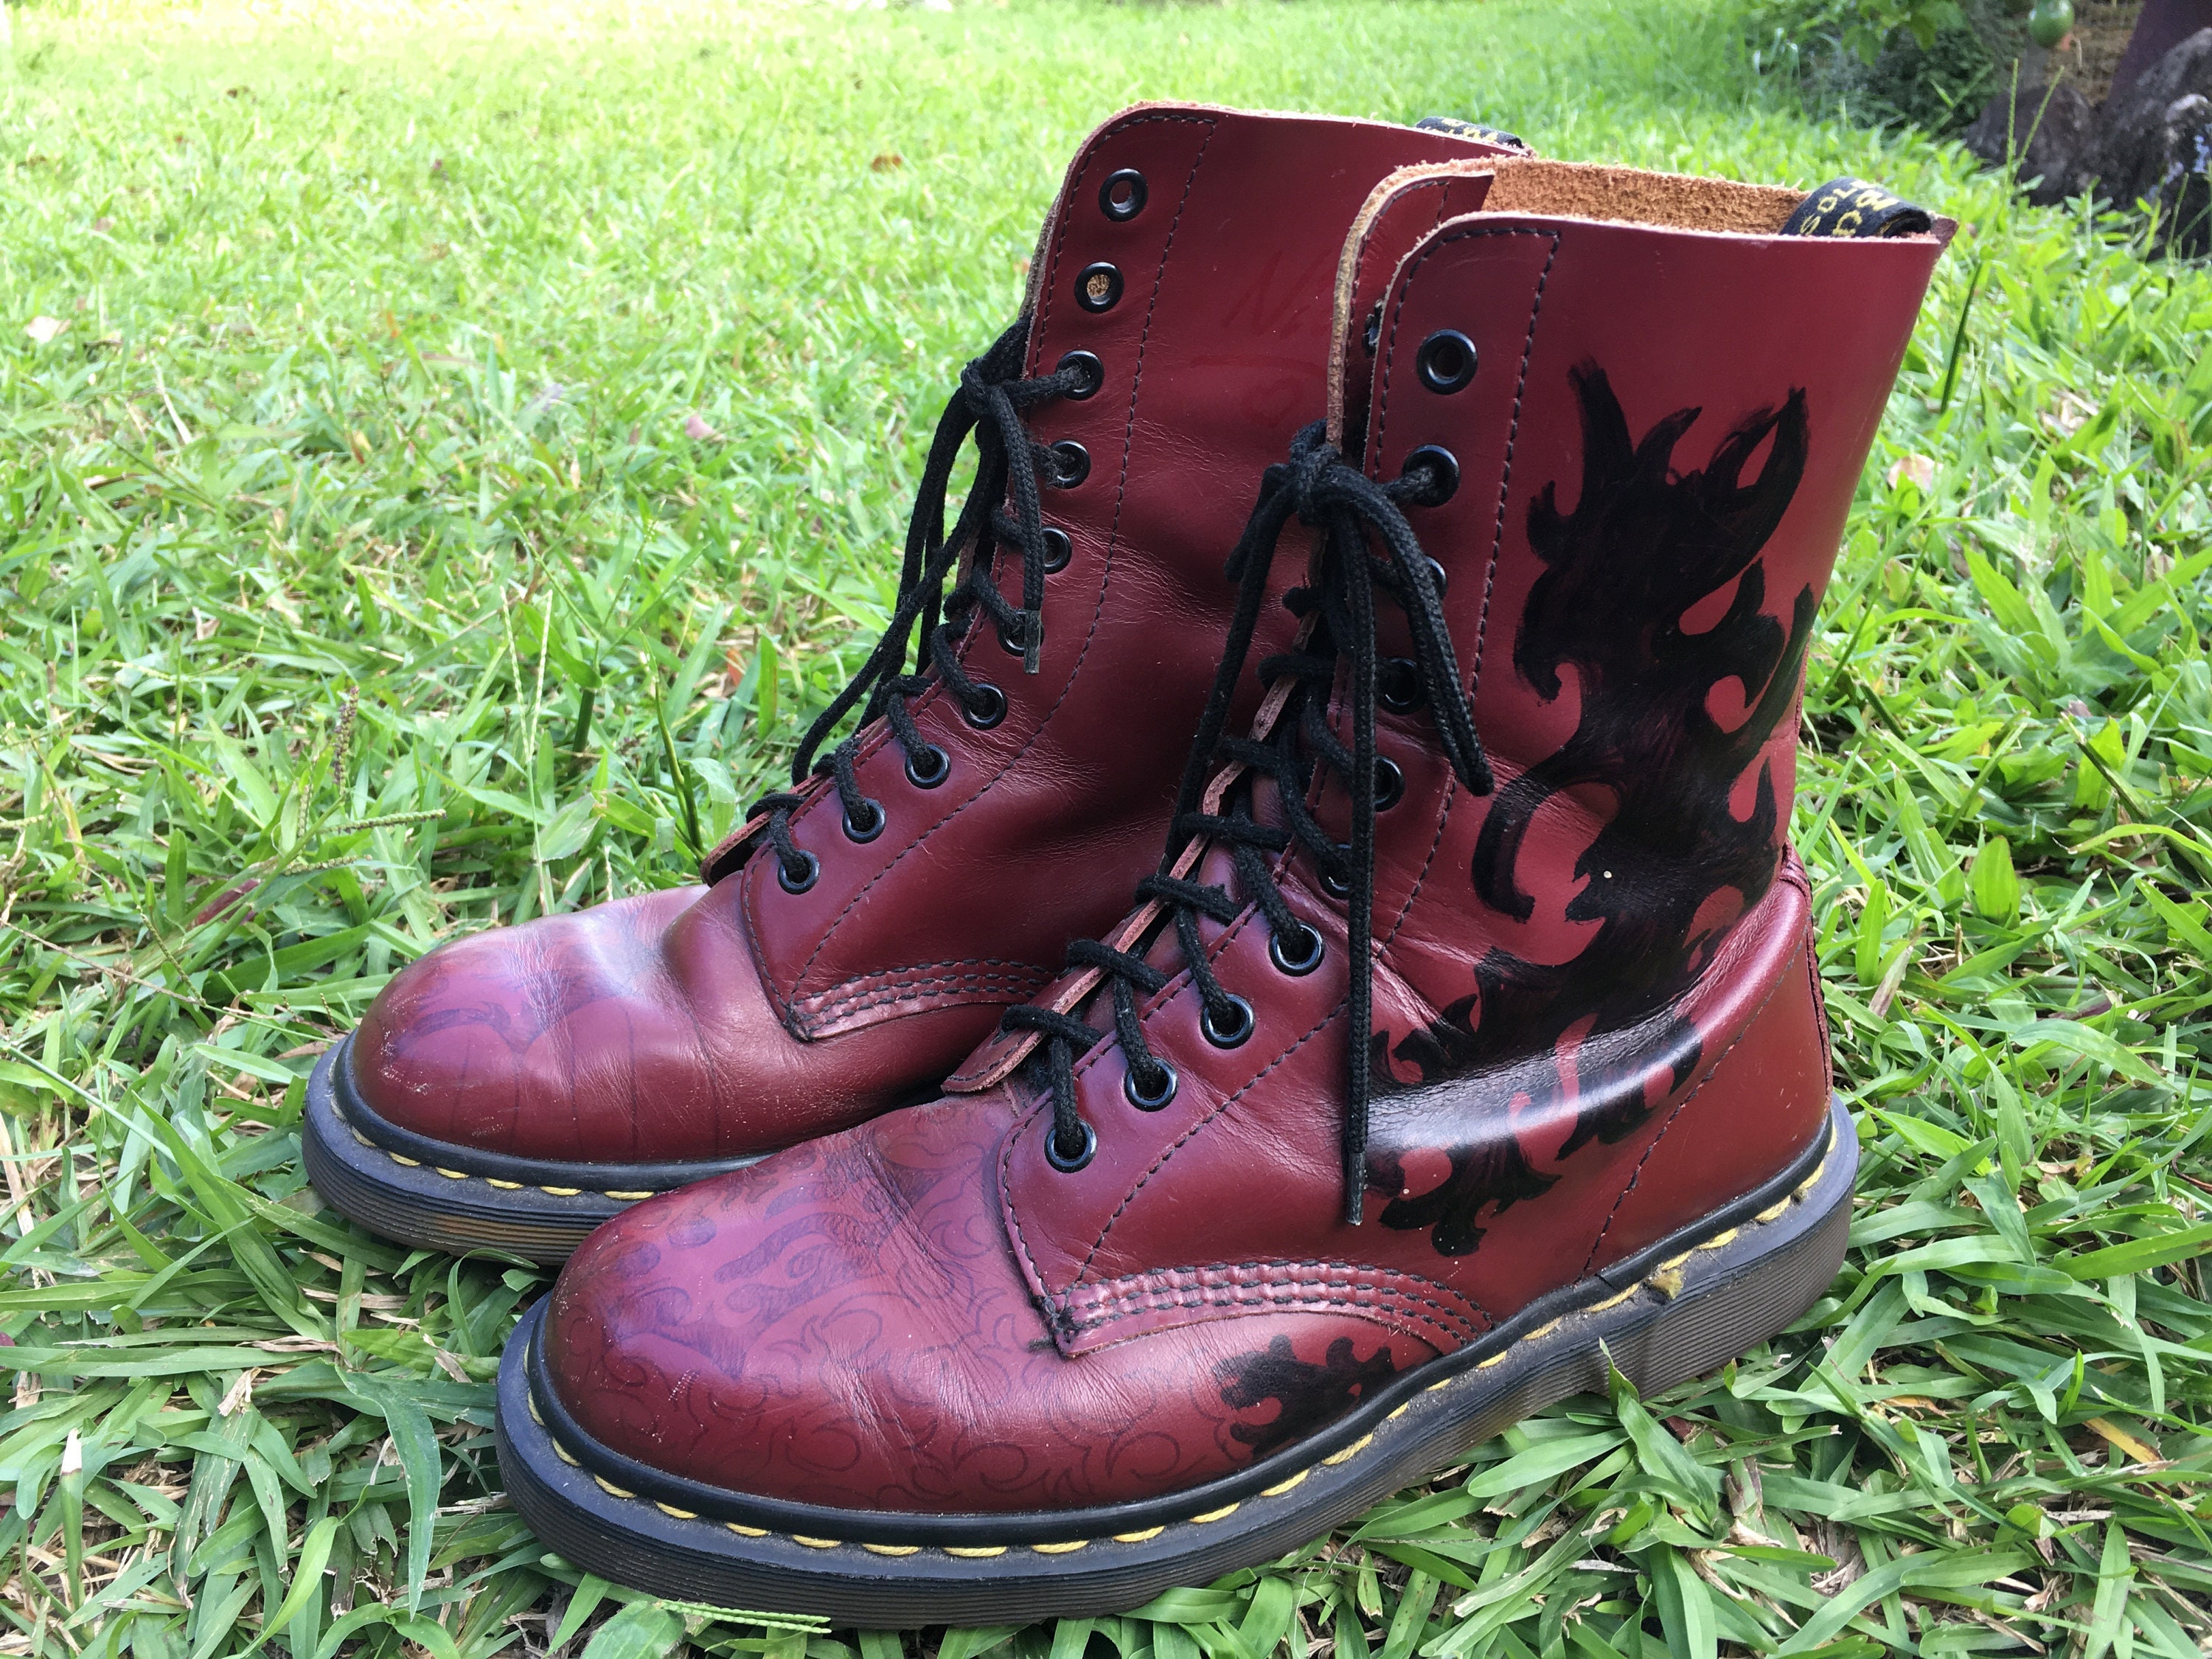 Doc Martens Boots Women's US) size 8 (AU and US) Women's size 6 (UK) girls Burgundy 95e662